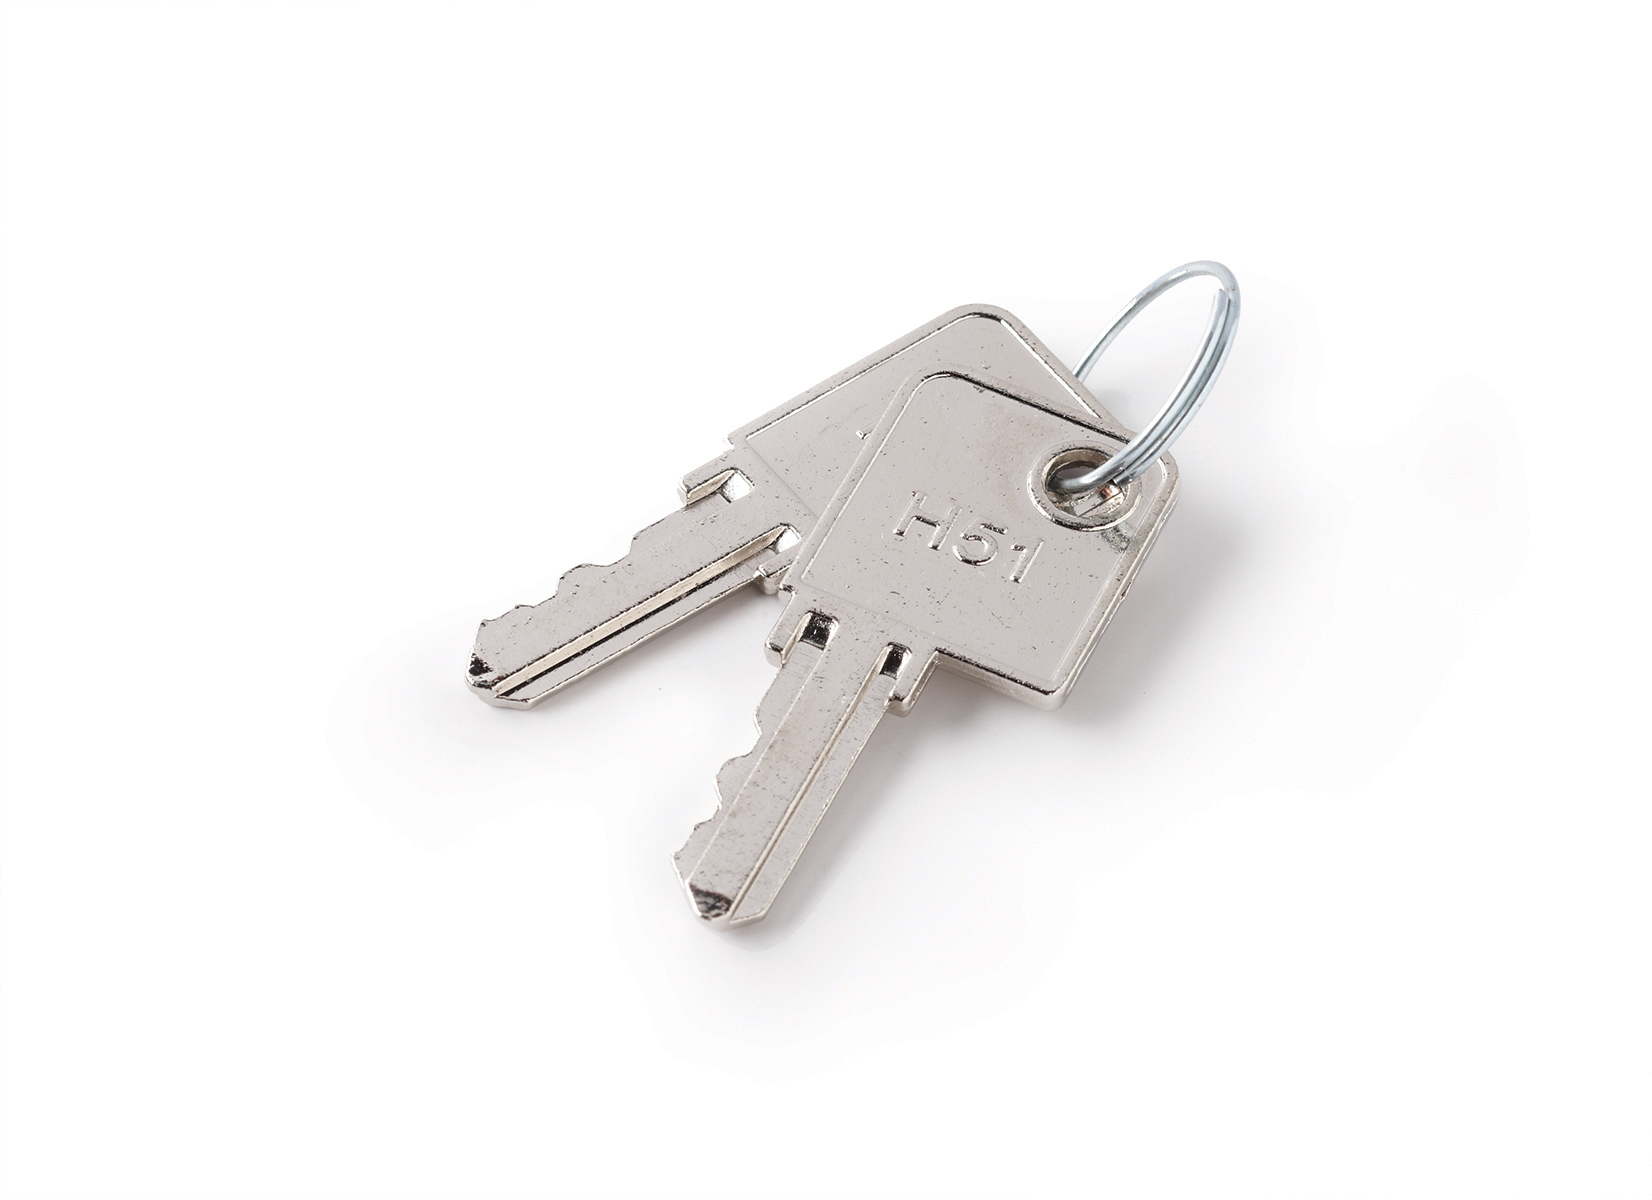 Keys - SOHO Vertical Files  sc 1 st  Hirsh Industries & Keys - SOHO Vertical Files | Hirsh Industries